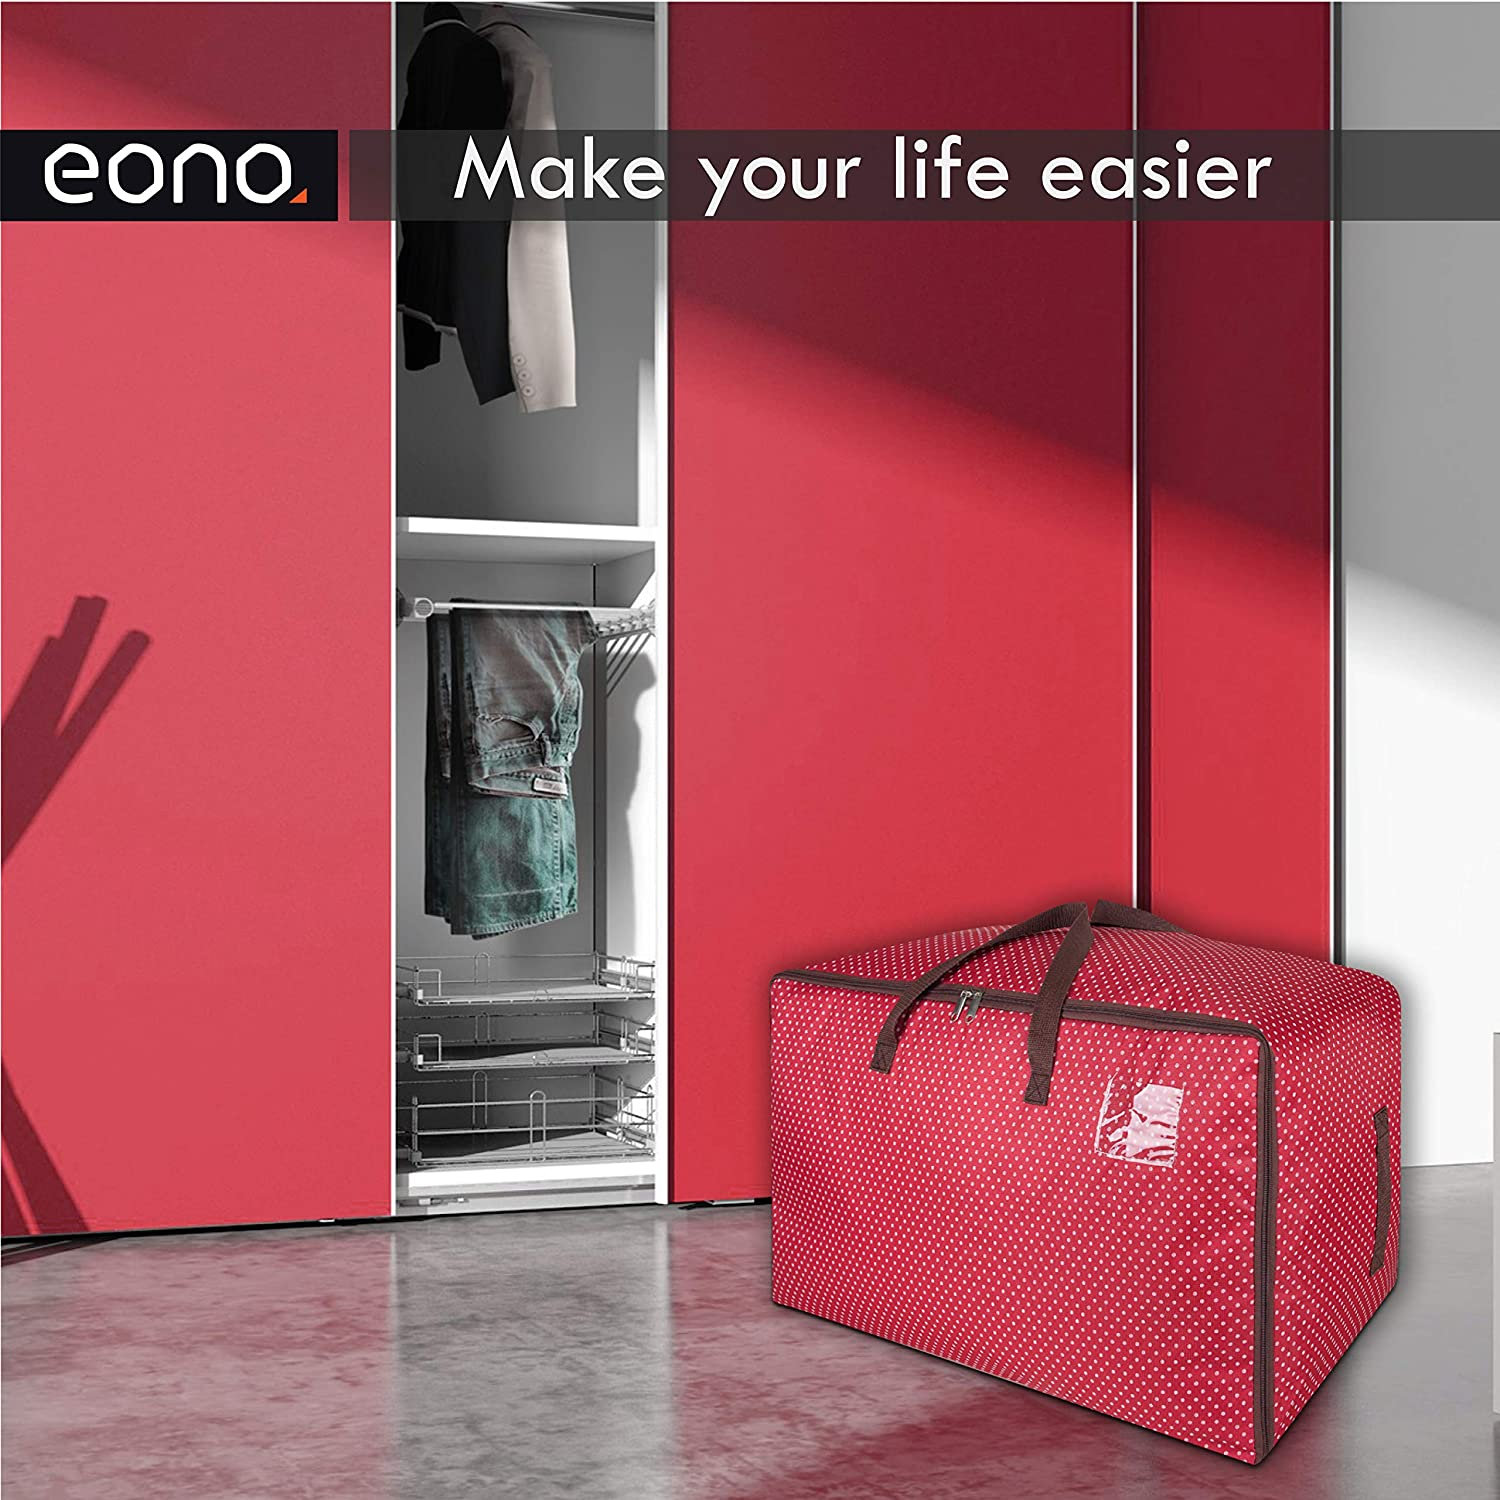 Fabric Clothes Bag Thick Ultra Size Under Bed Storage Eono  Brand 100L Large Storage Bag Red Moisture proof